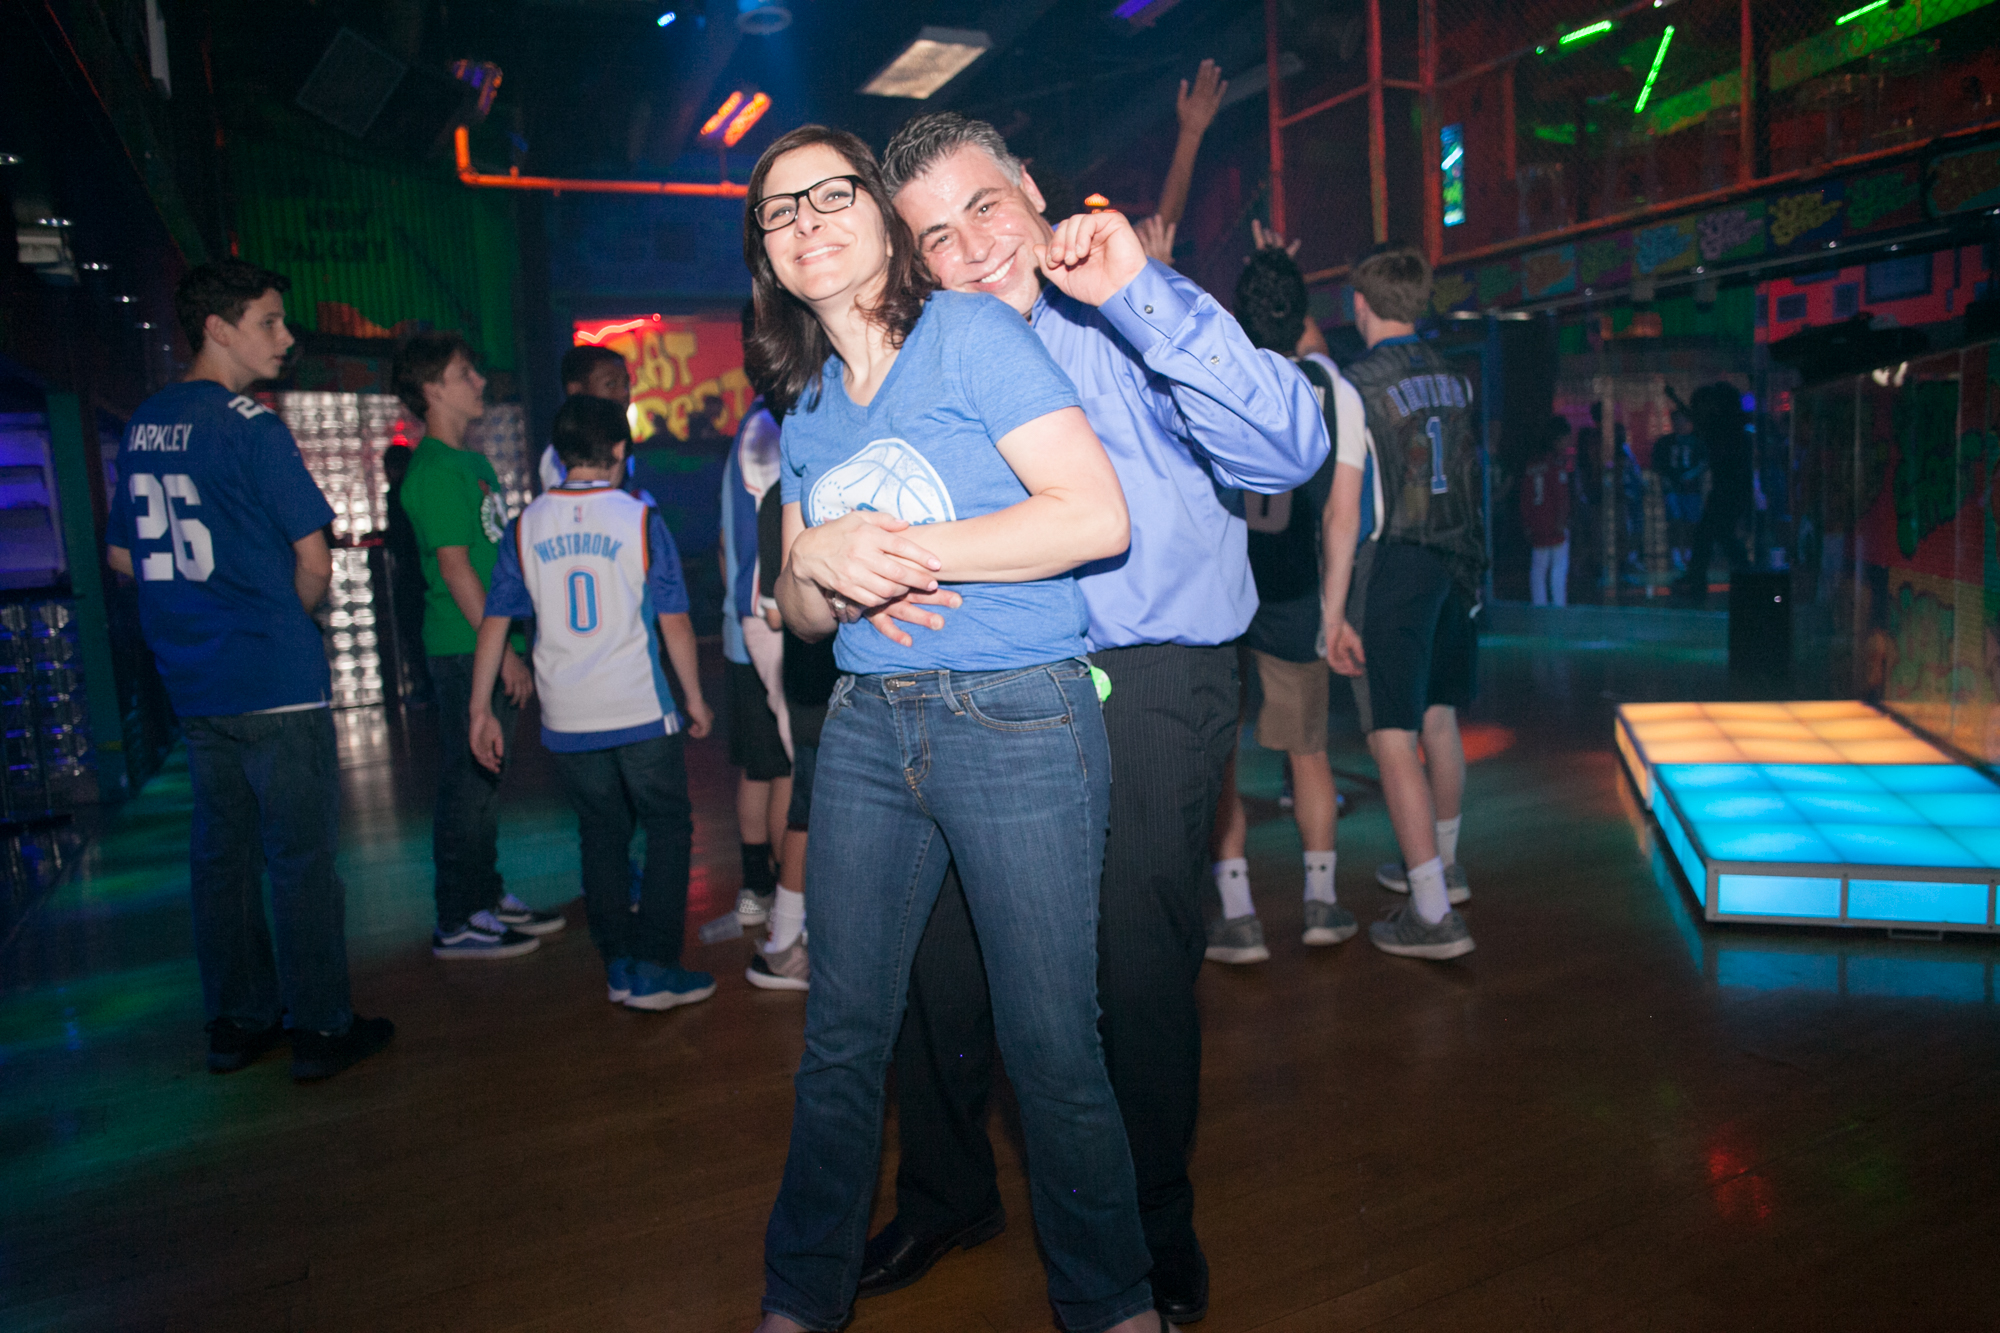 Max_Bar_Mitzvah_Preview (54 of 68).jpg